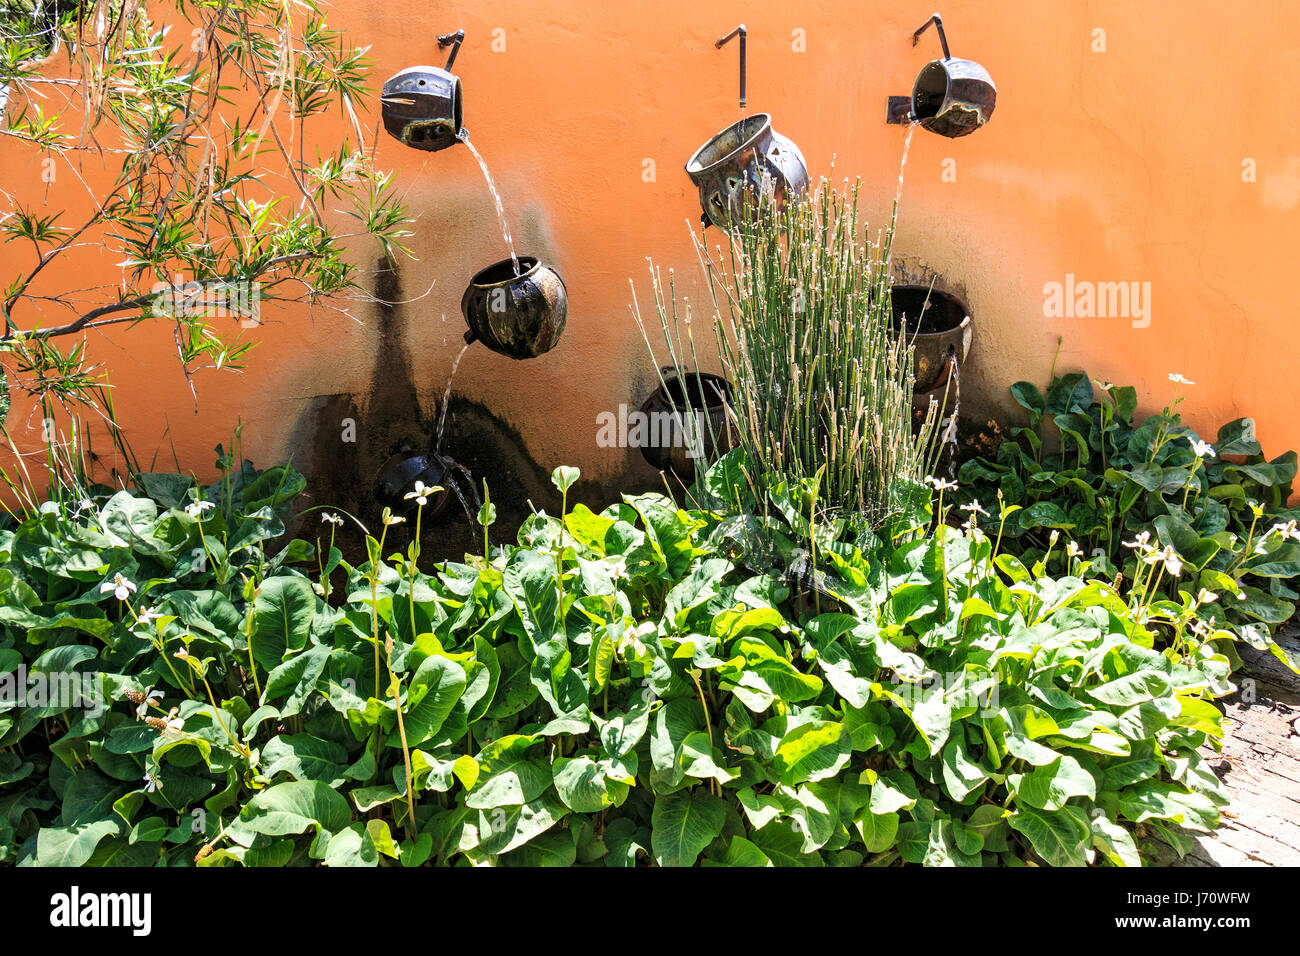 Water Pours From Pot To Pot Along A Wall At Tohono Chul Park, A Beautiful